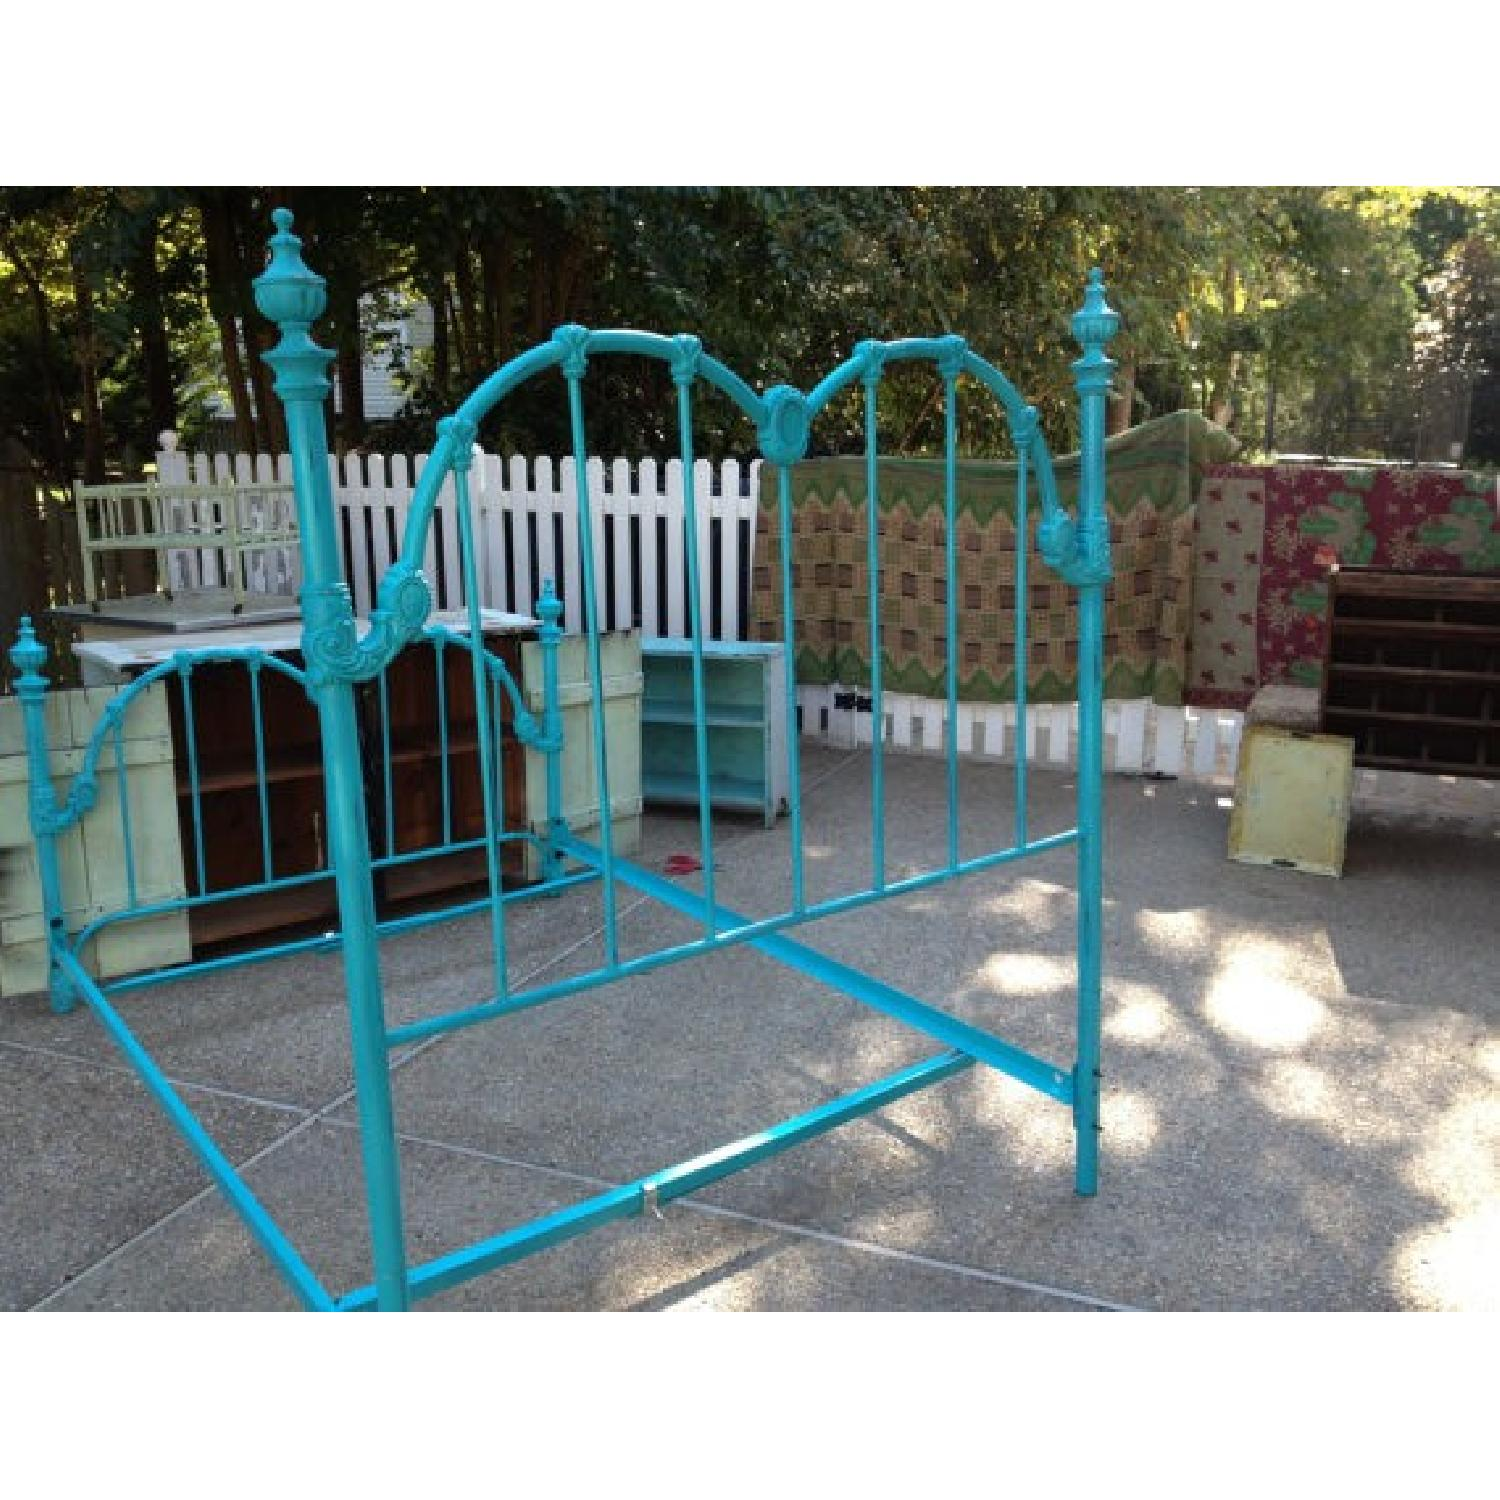 Full Sized Vintage Bed Frame - image-2